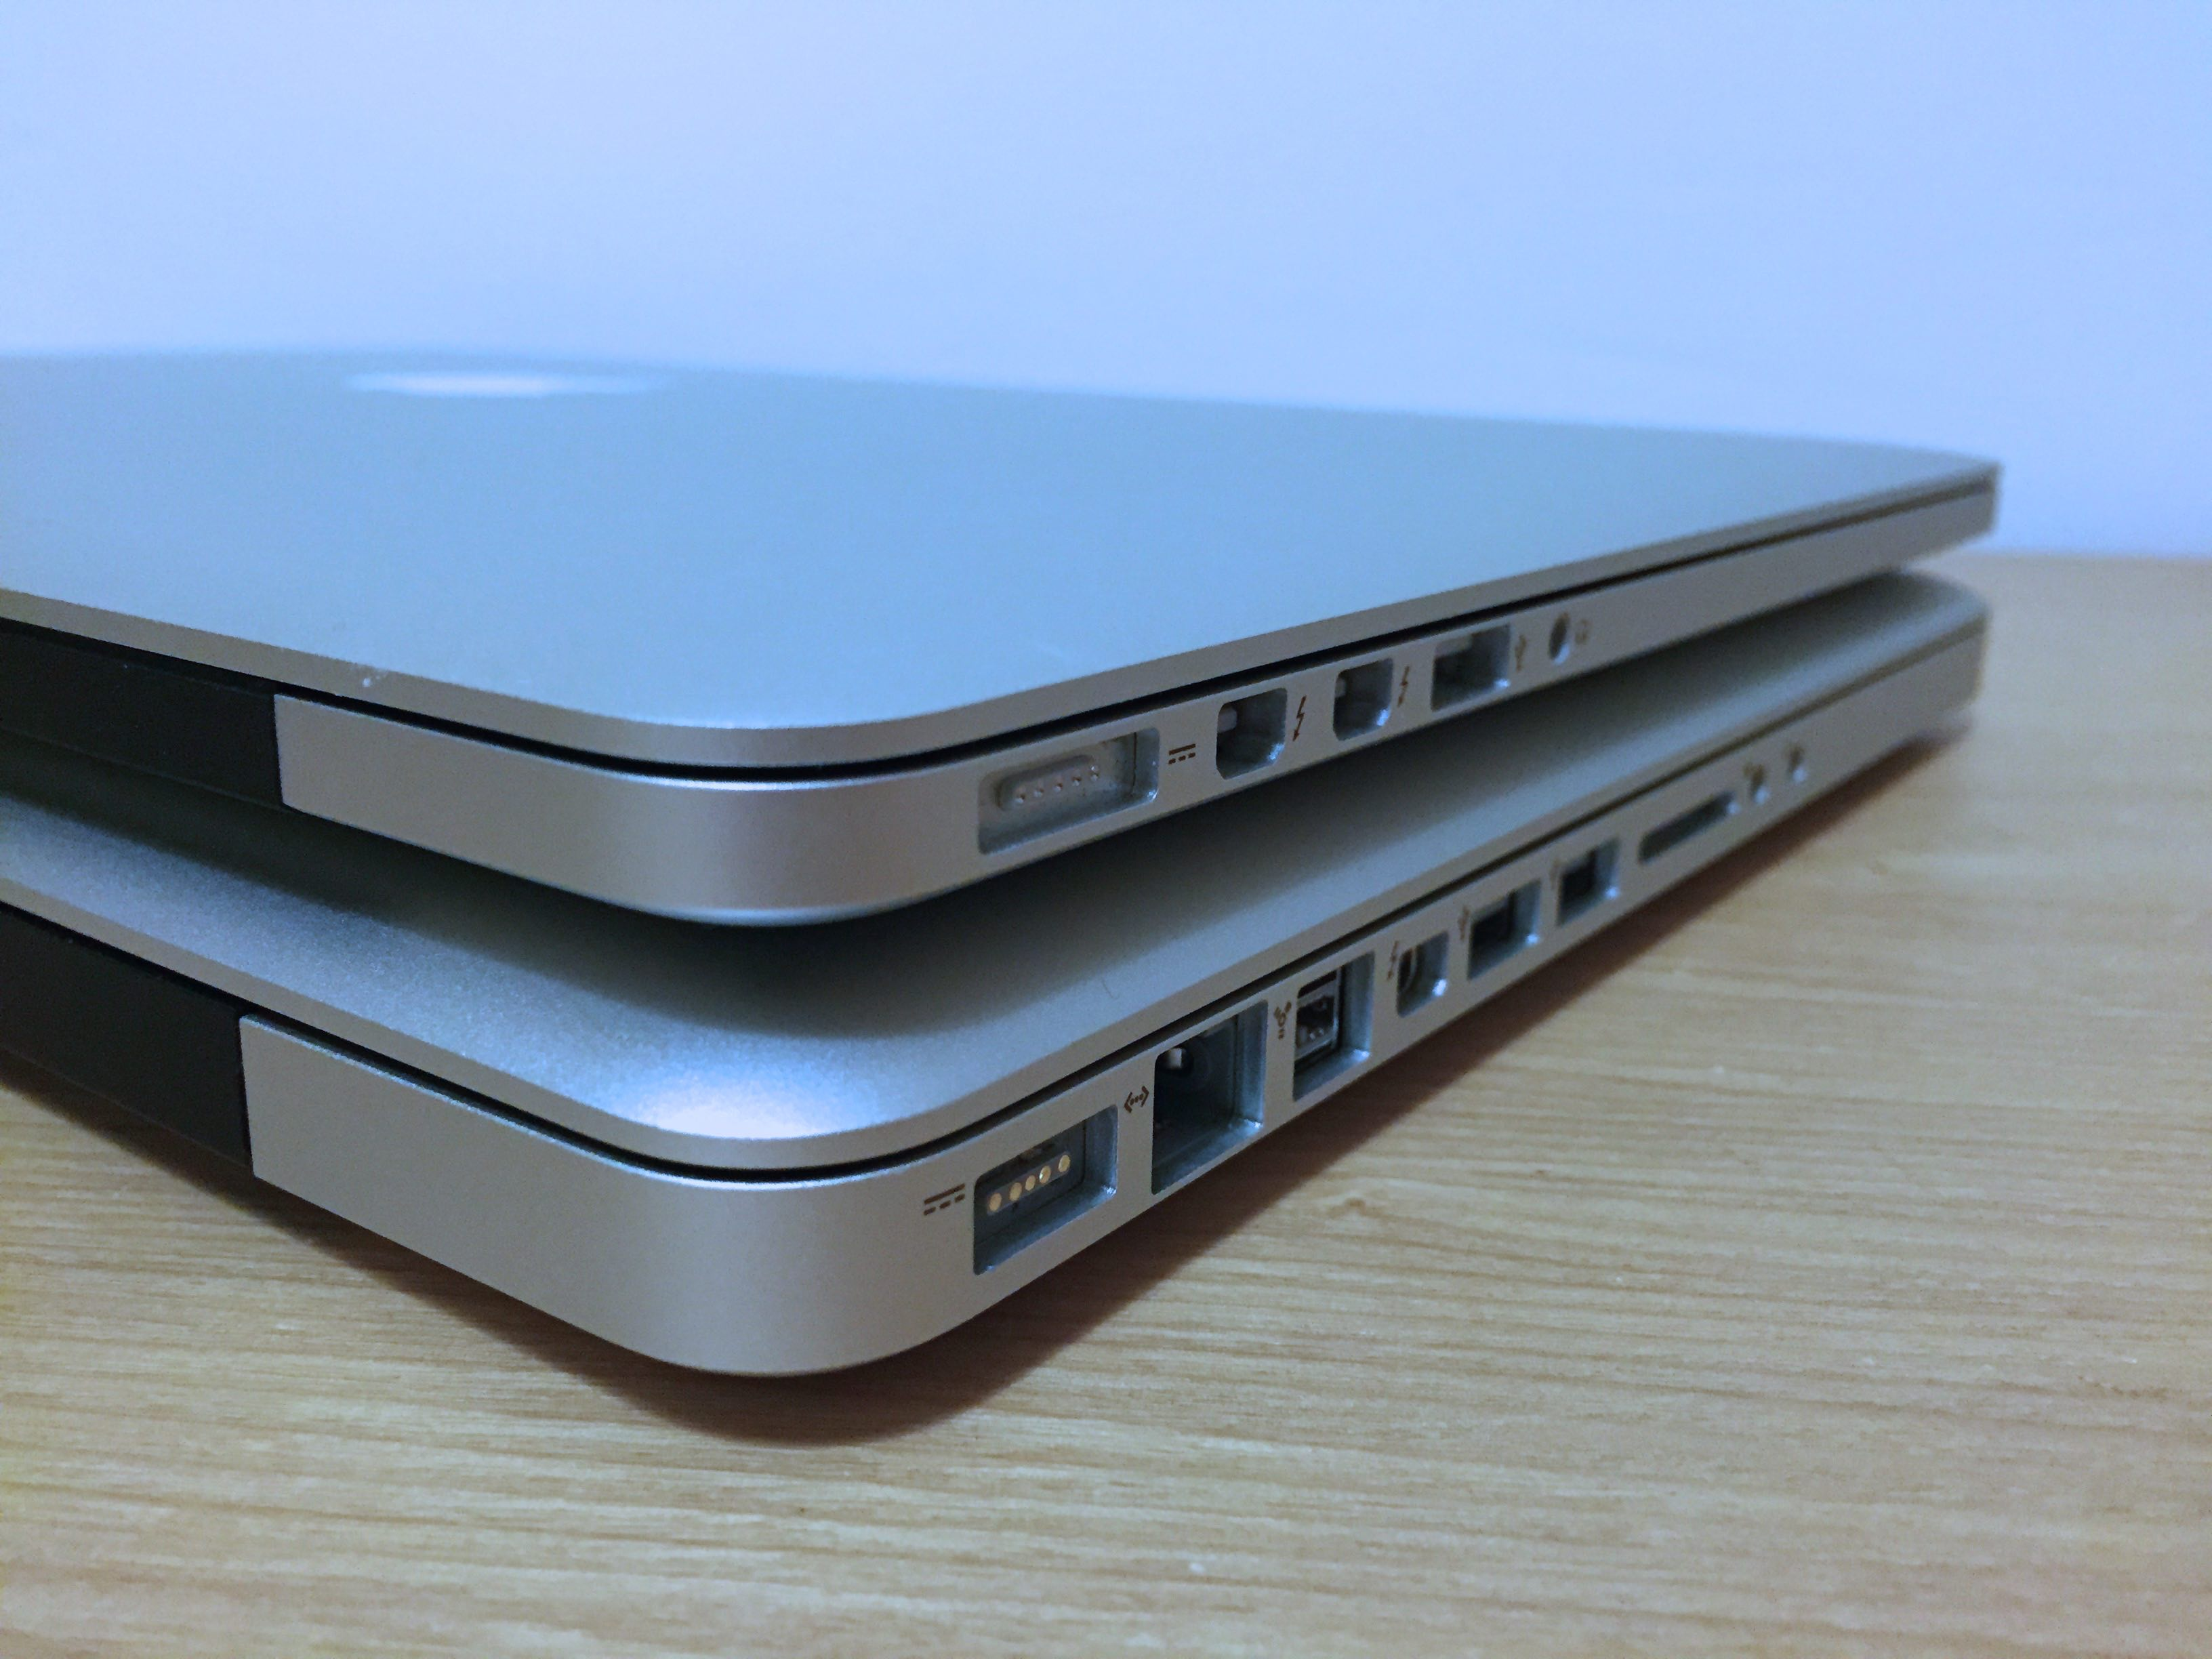 Difference macbook pro macbook pro retina00012